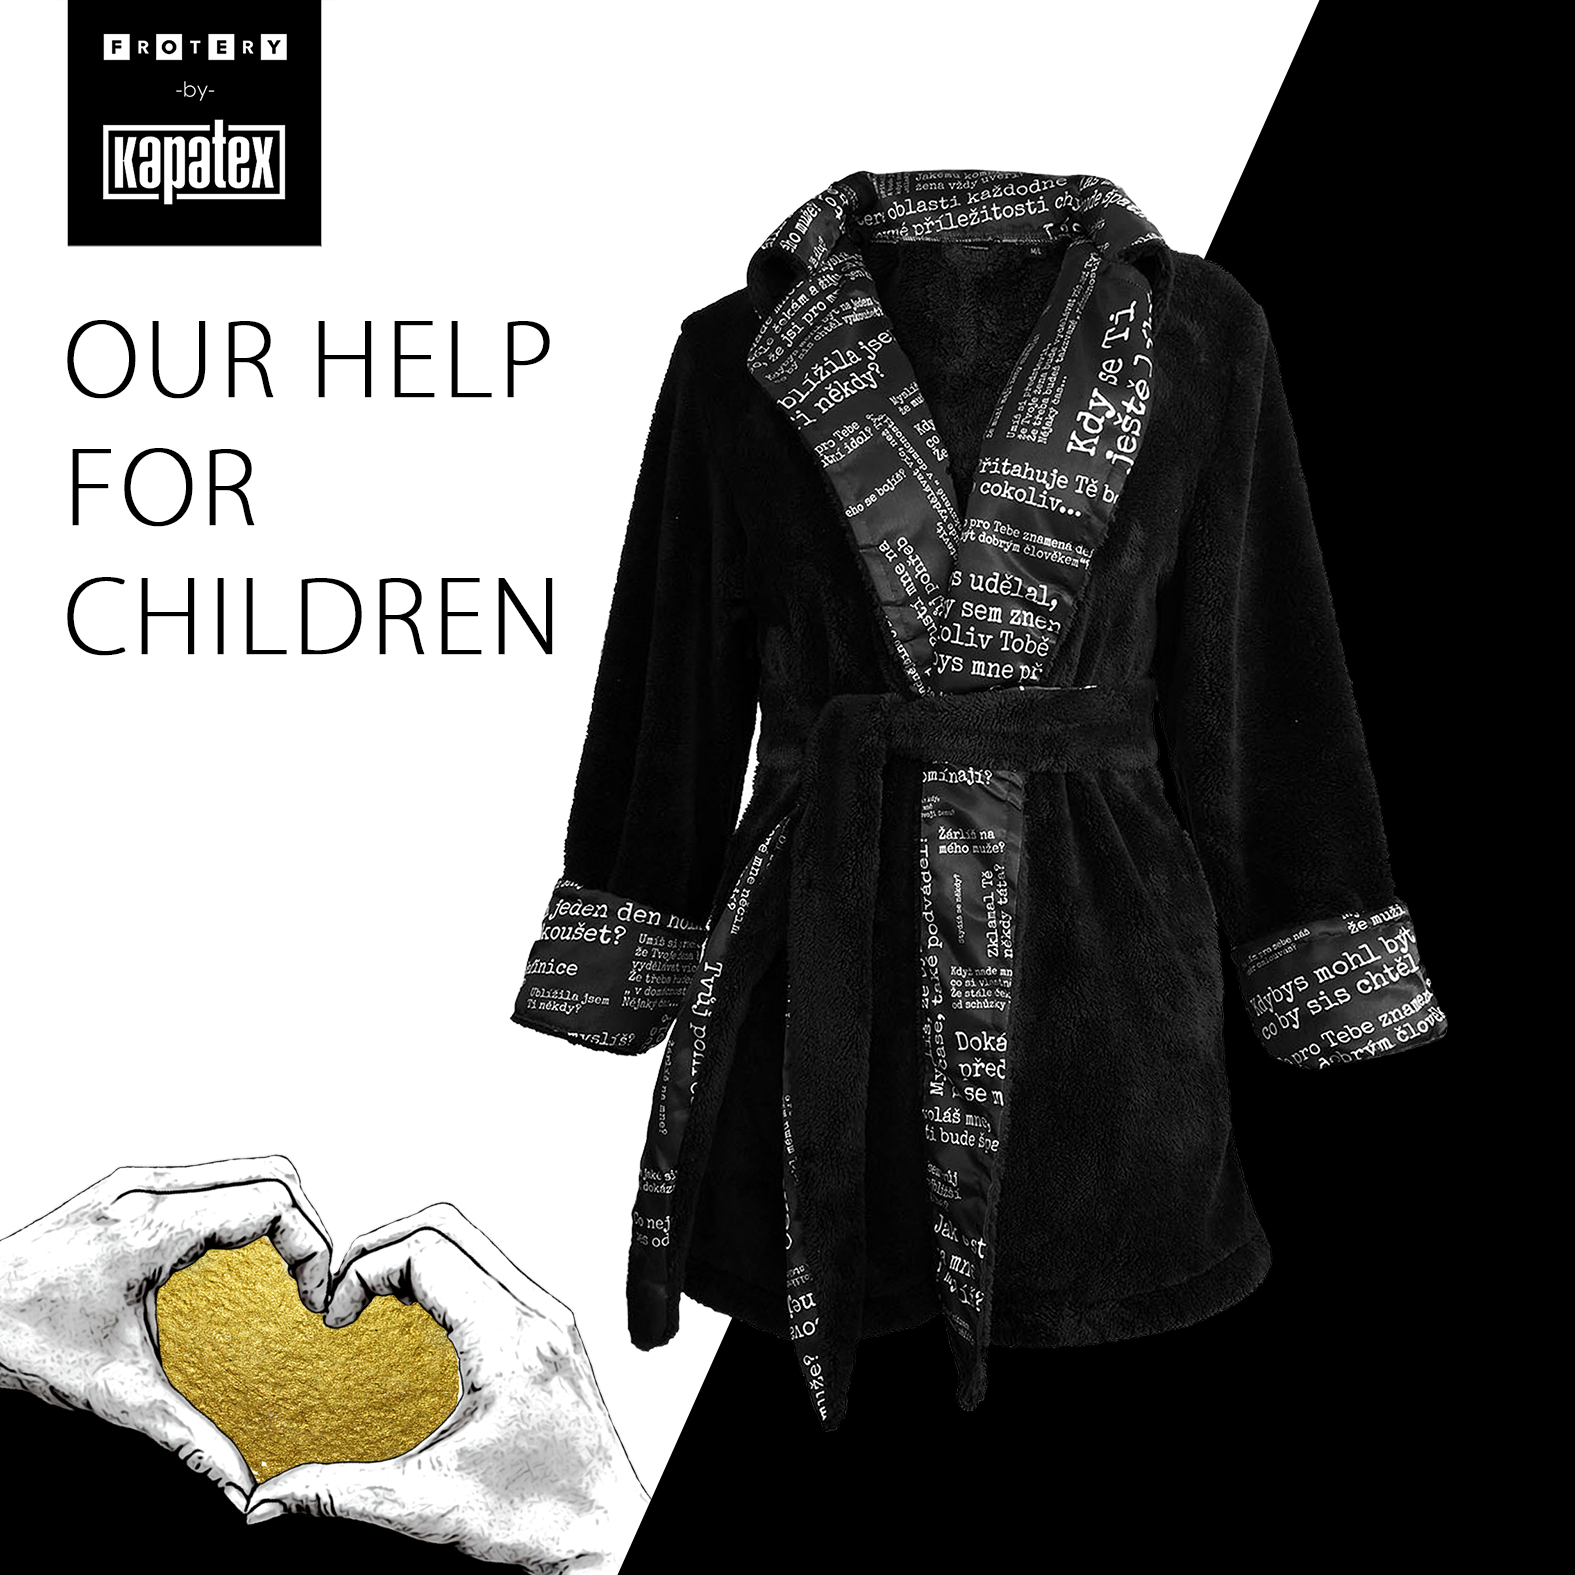 our help for children